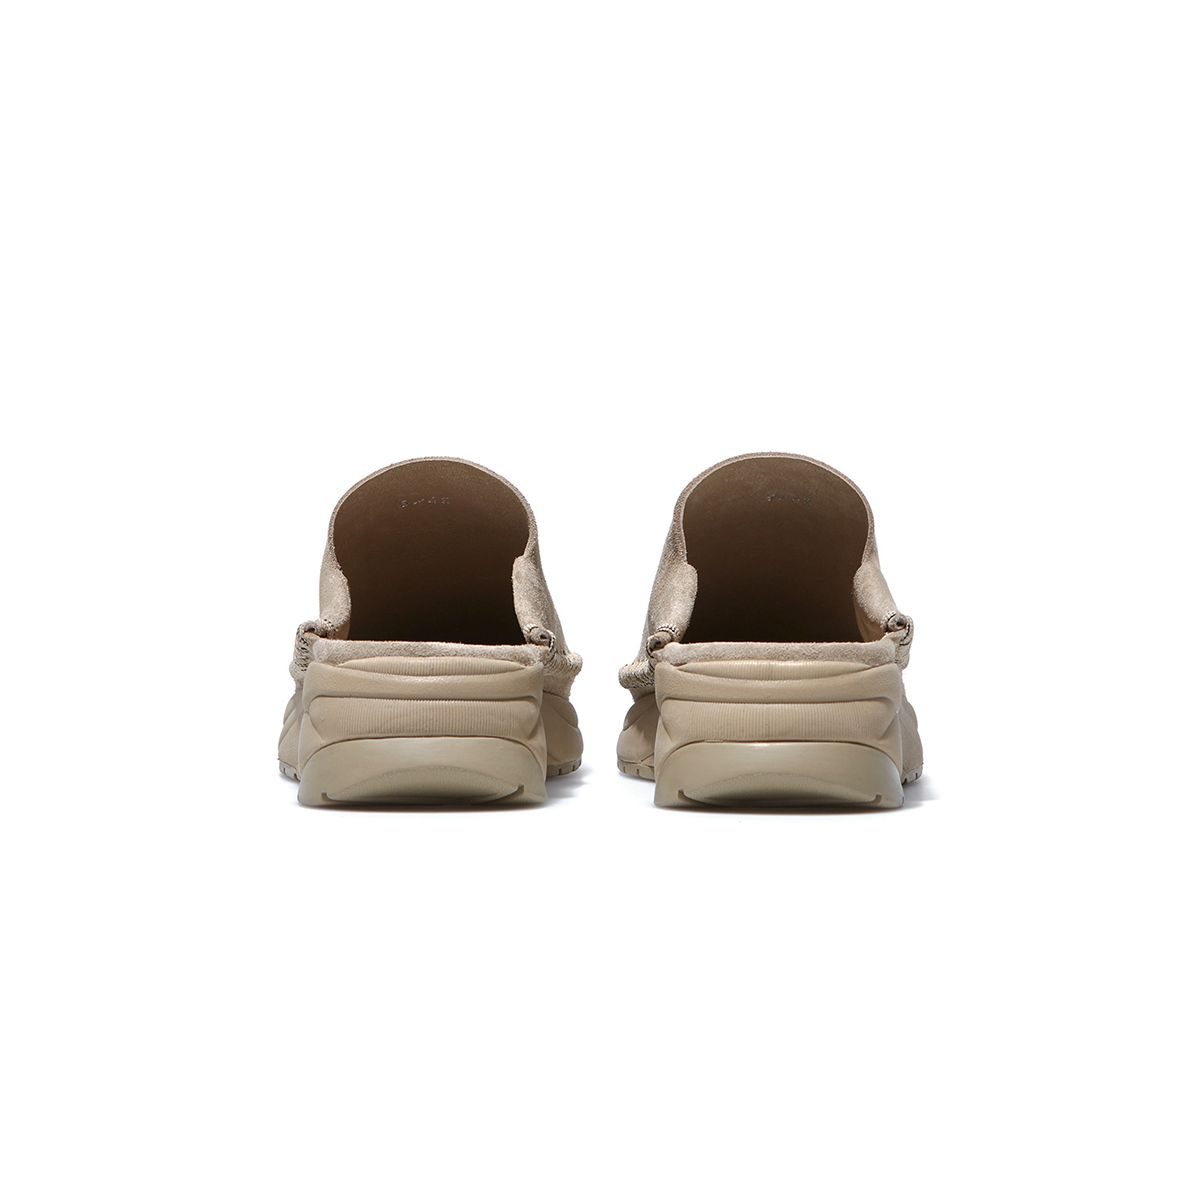 The CASBIA HAMMERHEAD Is Part Moccasin & Part Mule 58